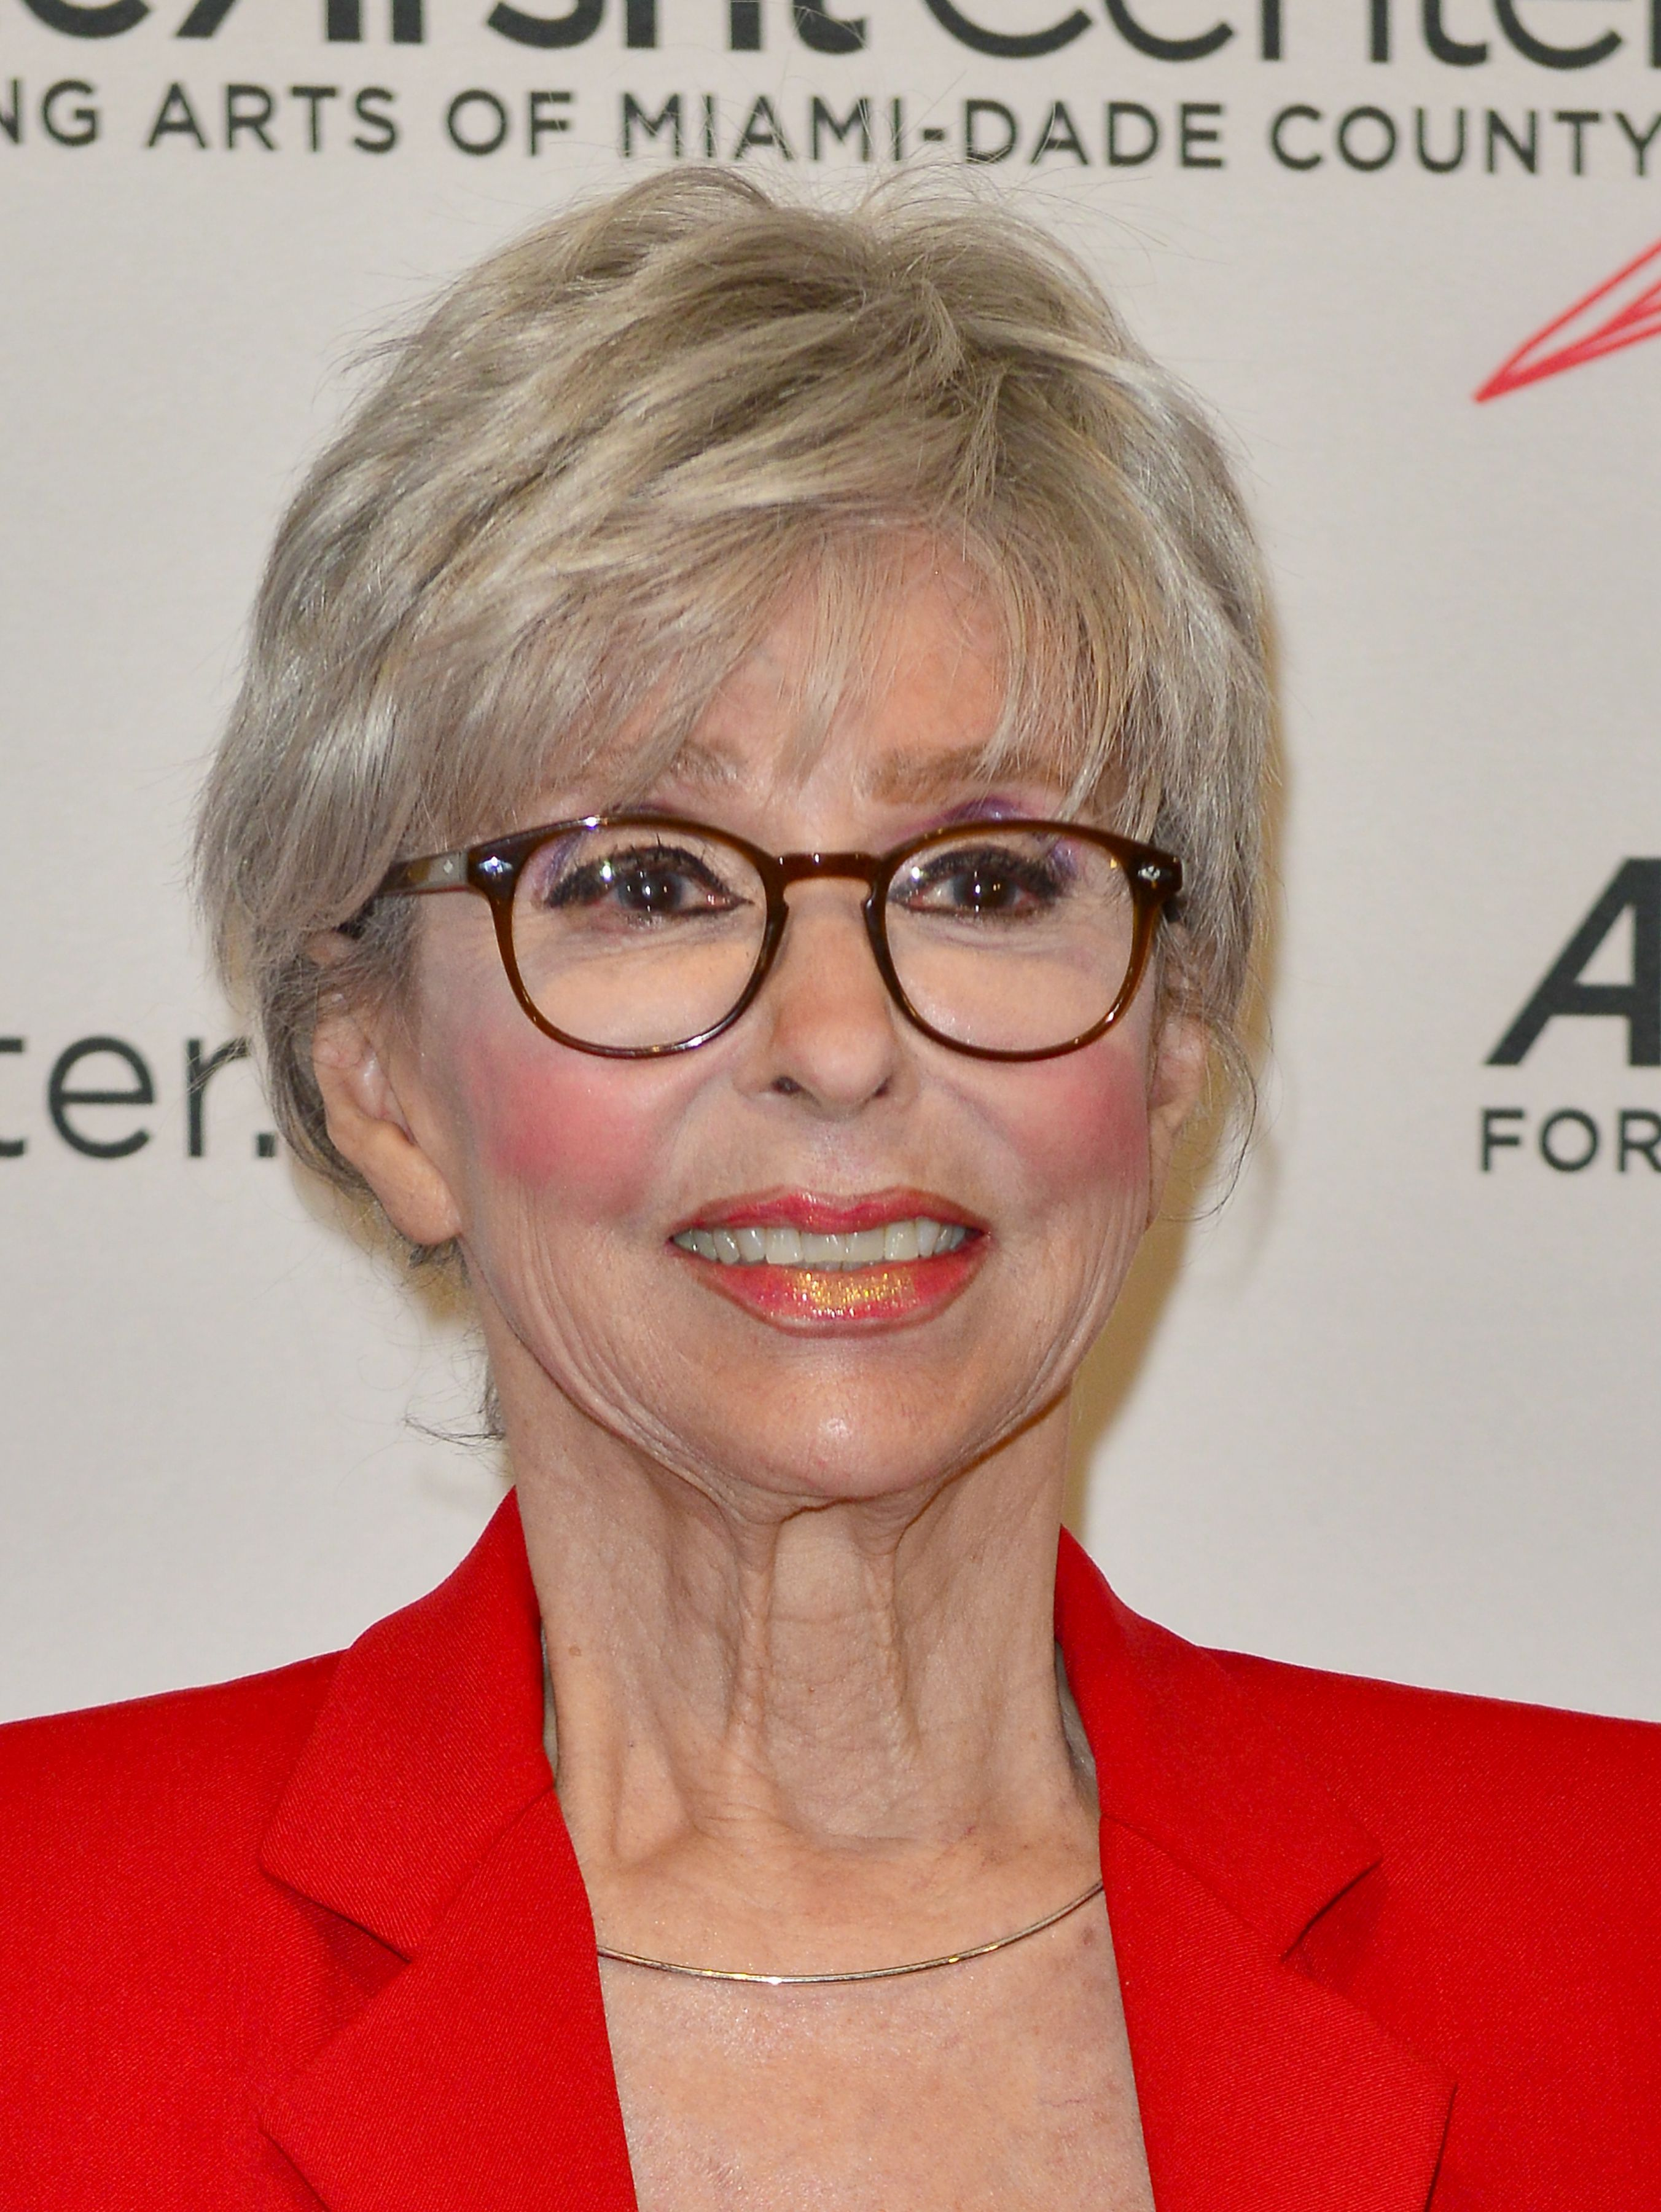 Rita Moreno attends the 11th Season Gala Concert at The Adrienne Arsht Center for the Performing Arts - Knight Concert Hall on March 30, 2017 in Florida.   Photo: Getty Images